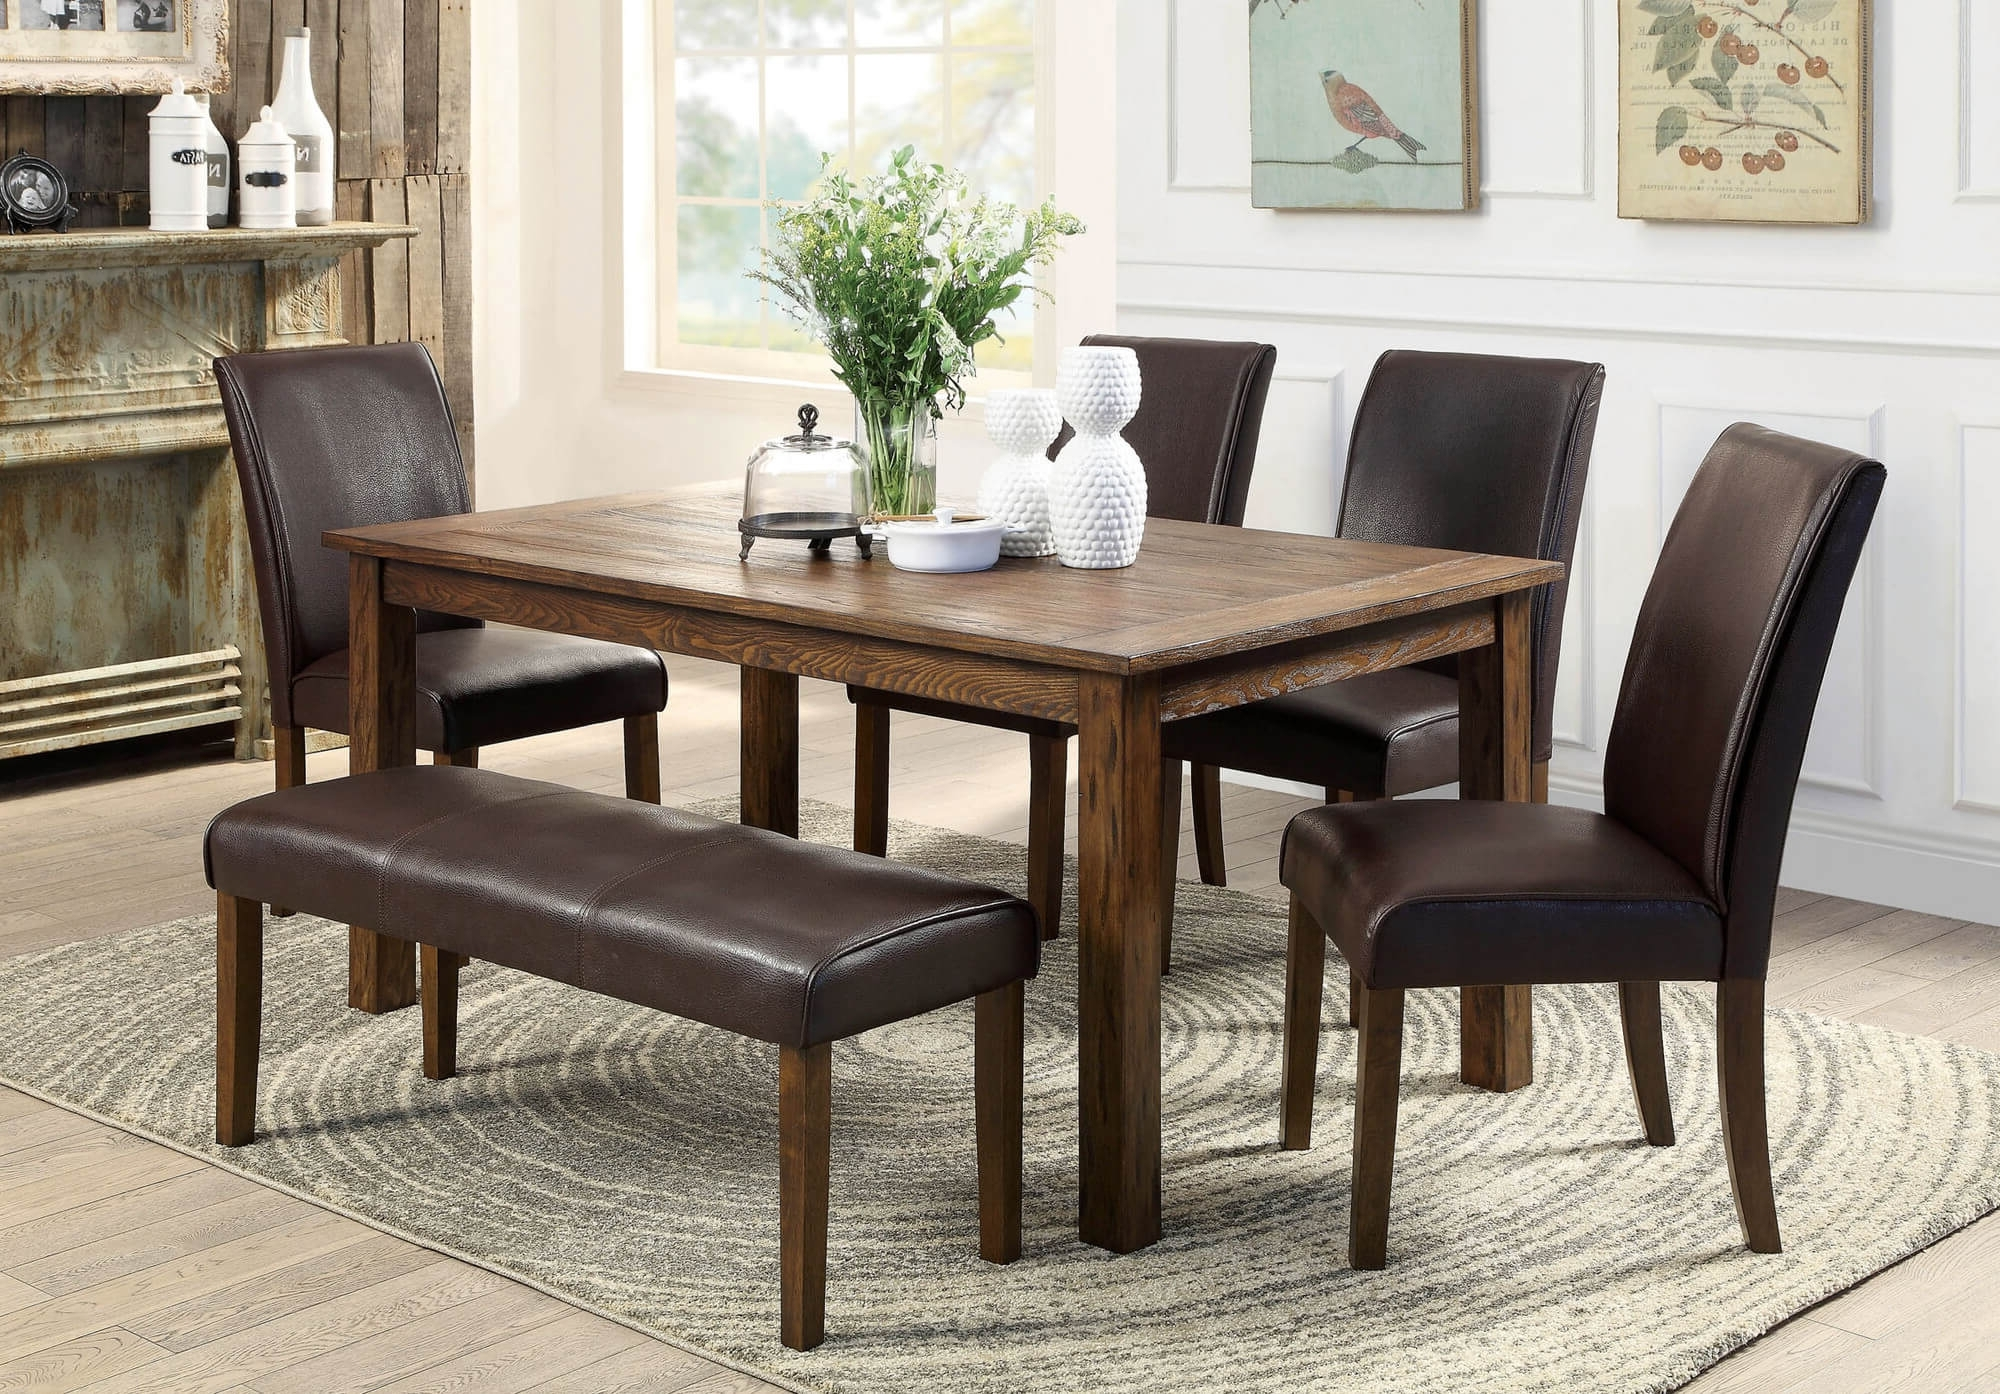 Best And Newest Small Dining Tables And Bench Sets Inside 26 Dining Room Sets (Big And Small) With Bench Seating (2018) (View 5 of 25)